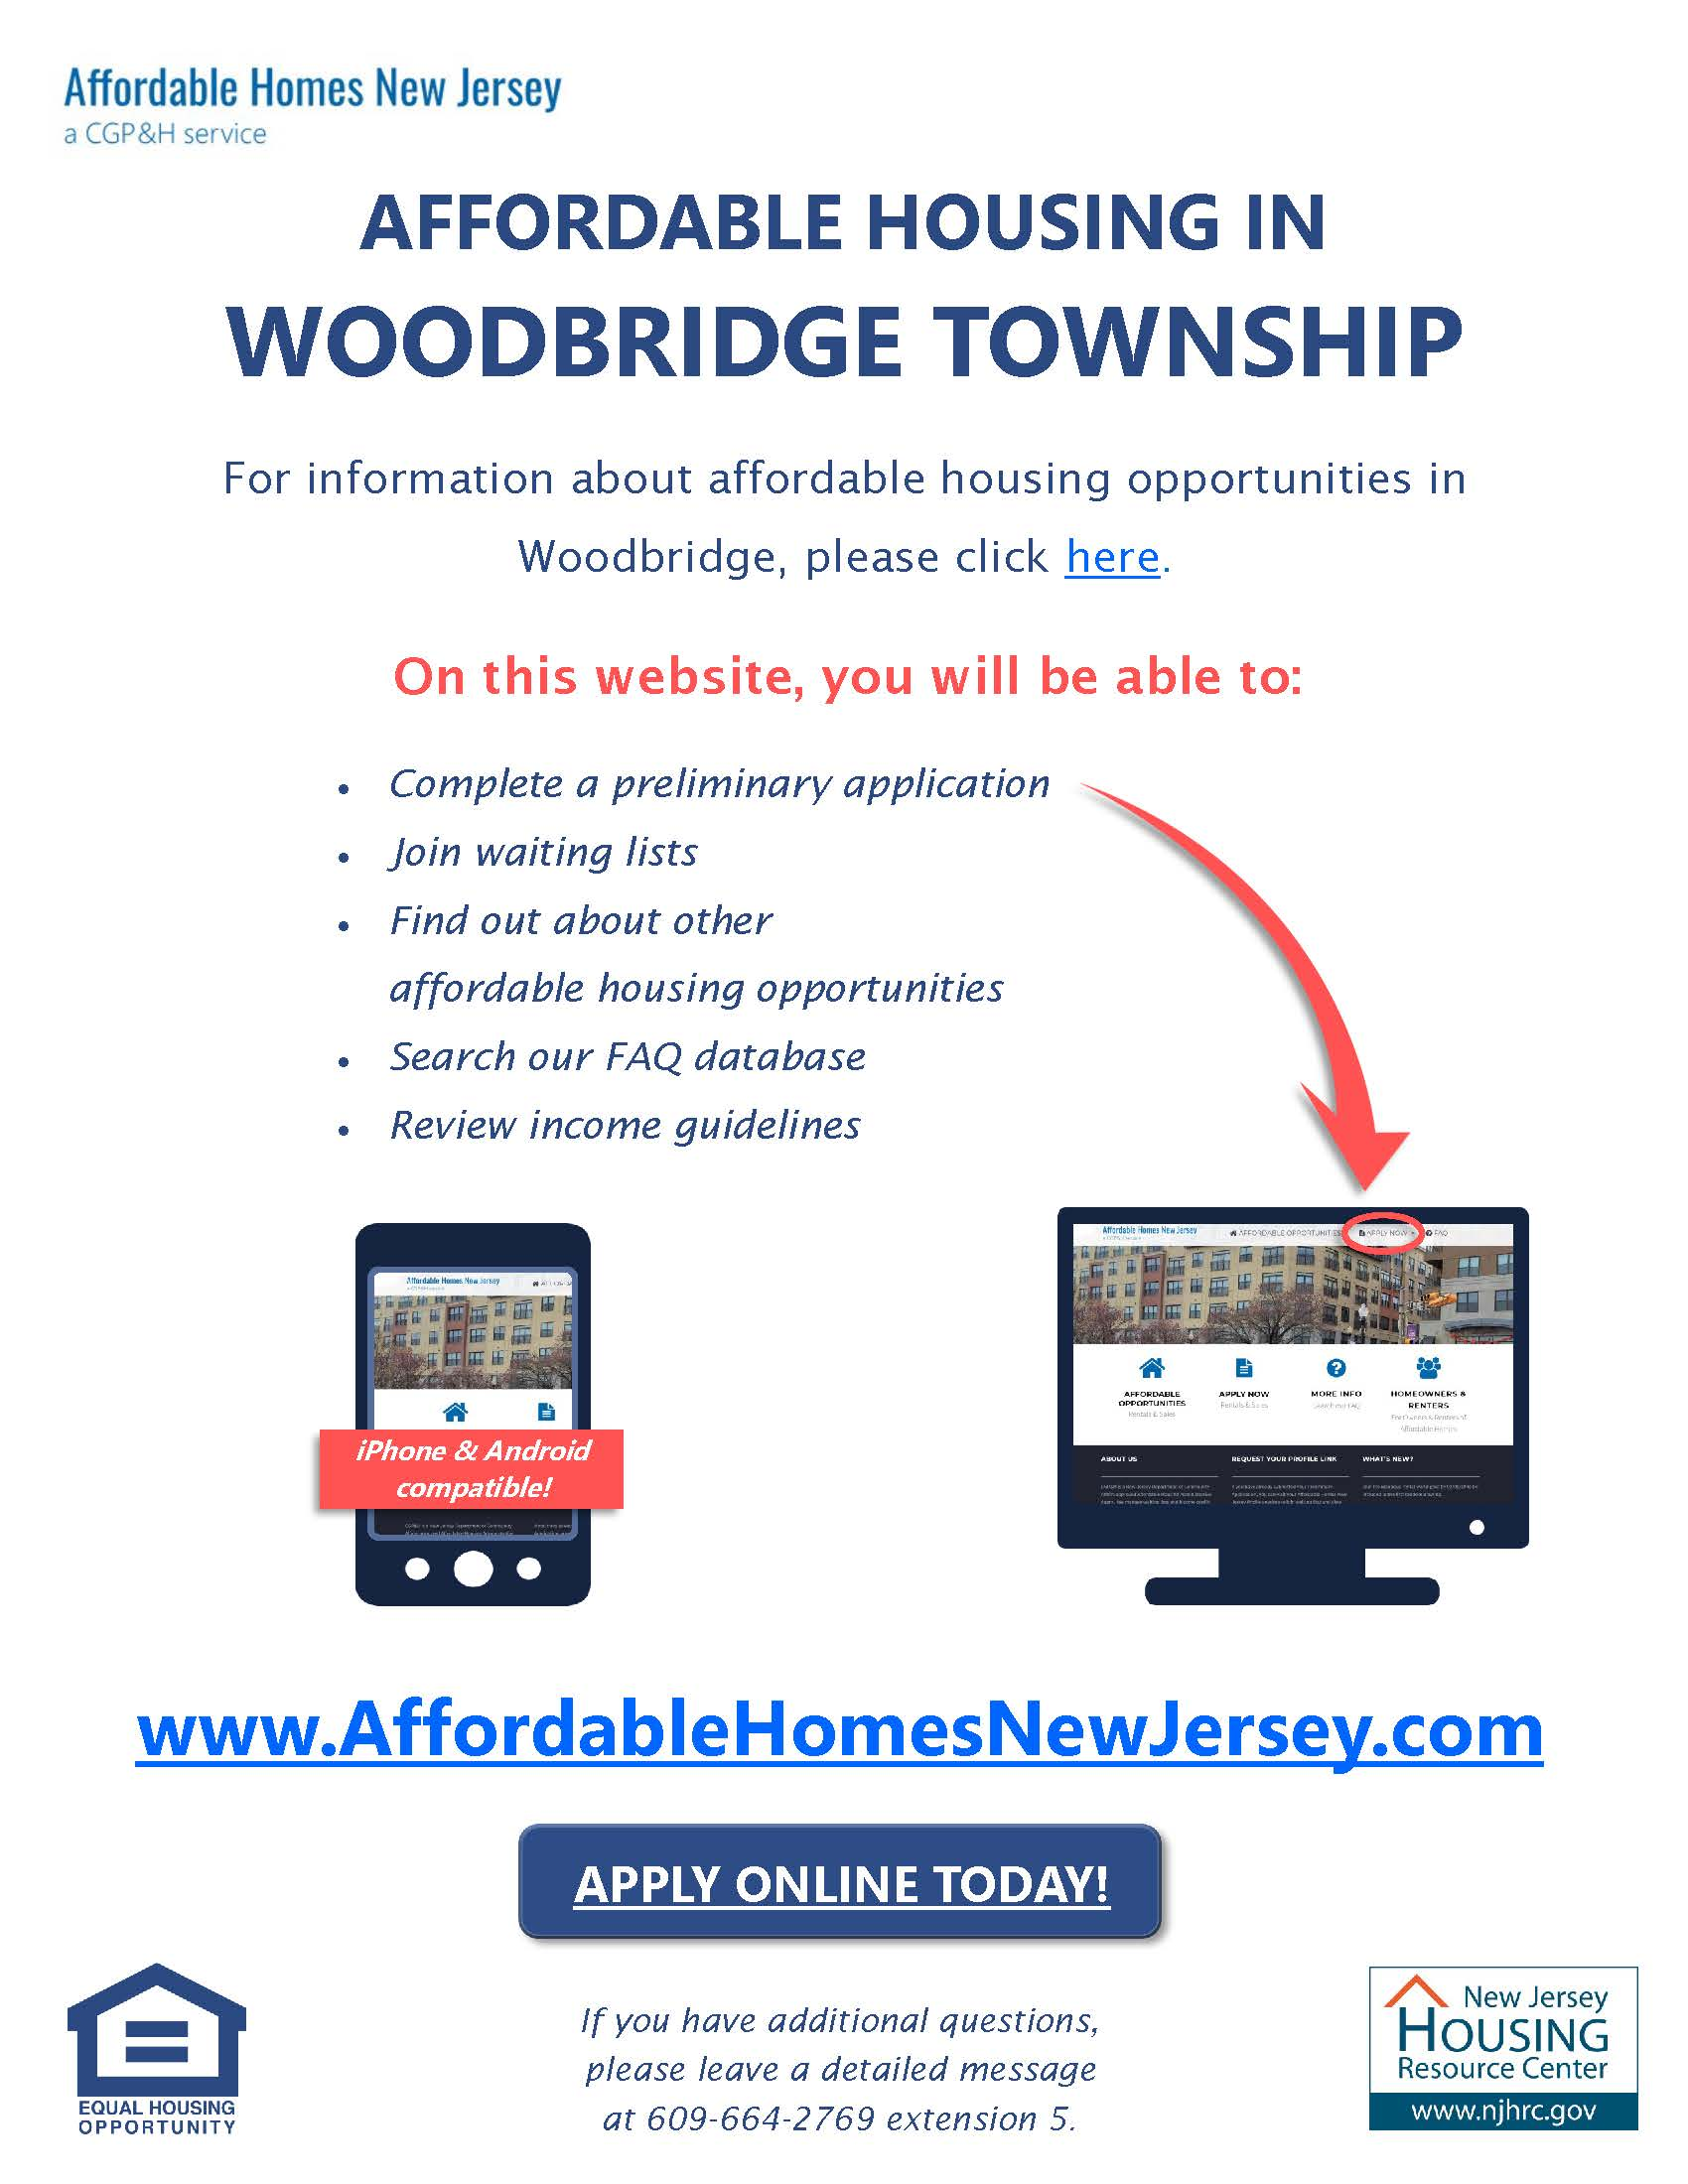 Woodbridge affordable housing website flyer